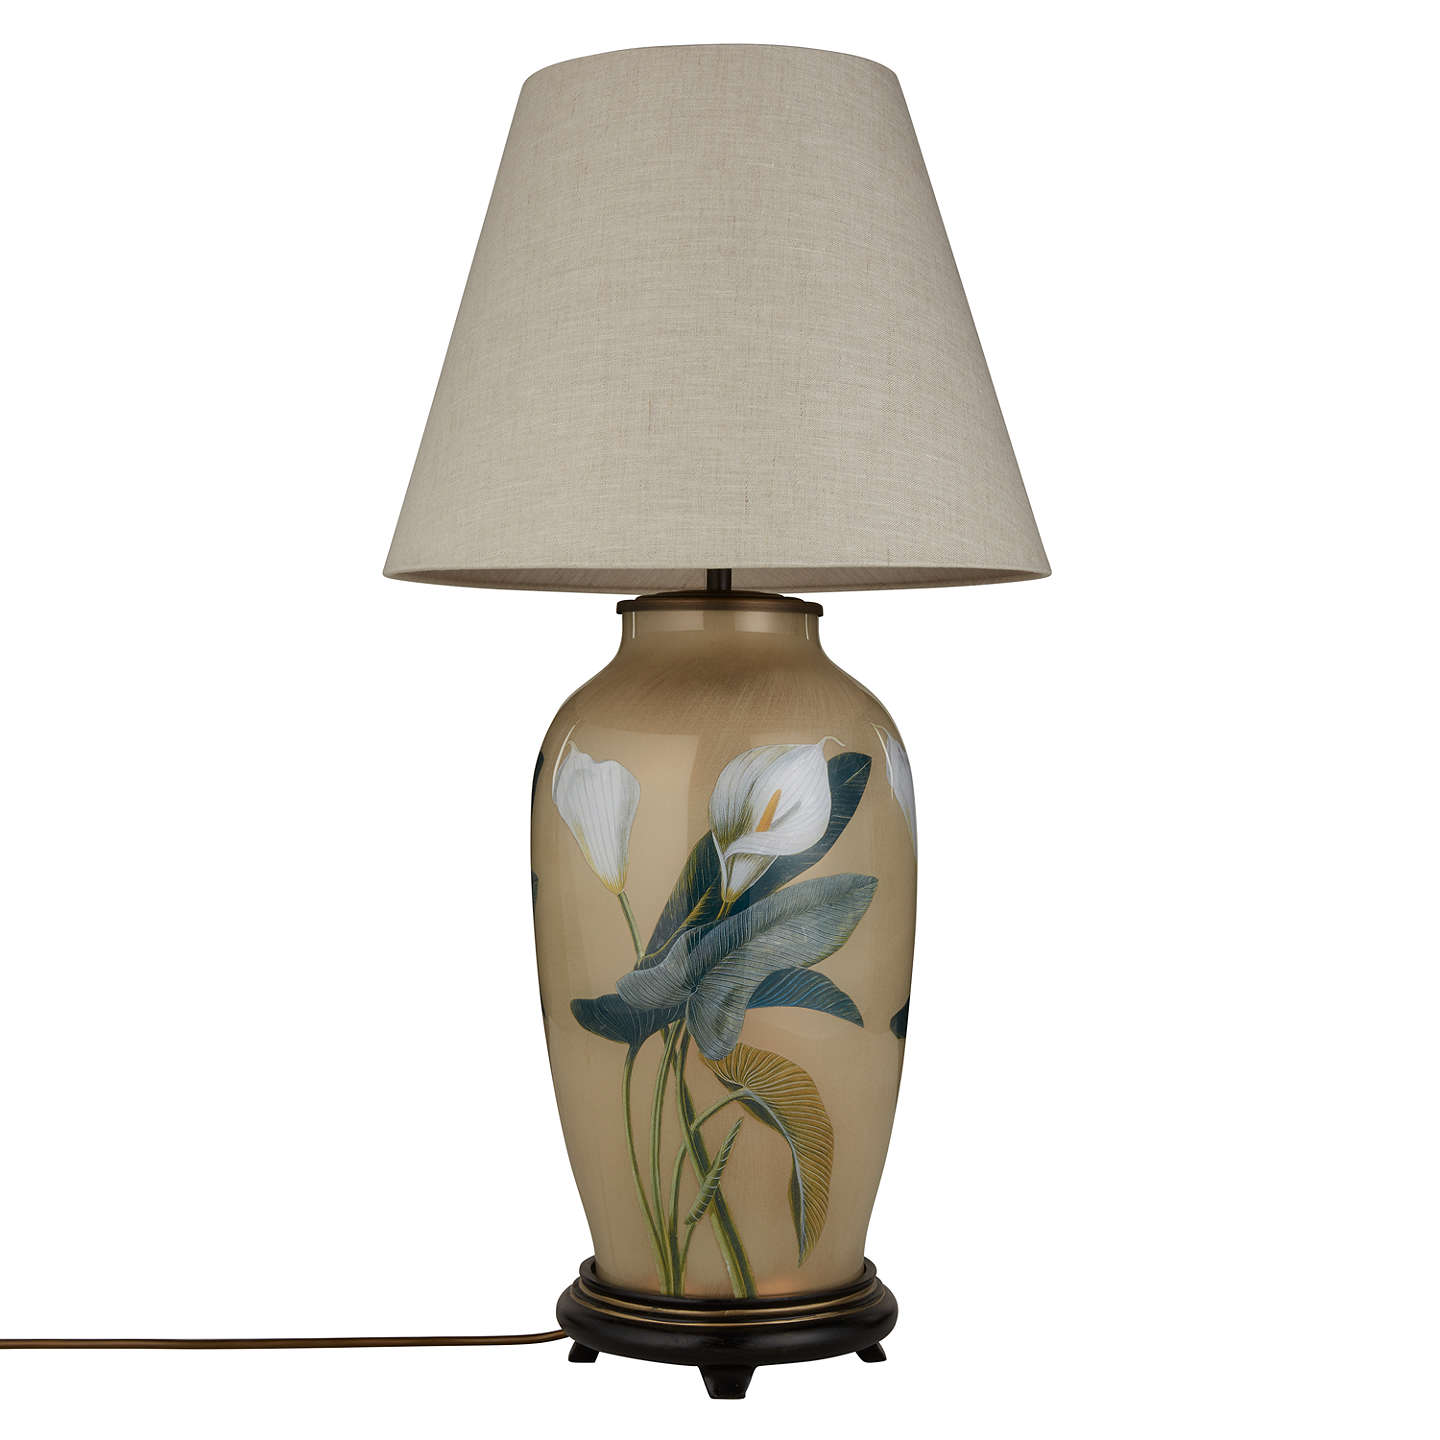 BuyJenny Worrall Tall Urn Arum Lily Lamp Base Online at johnlewis.com